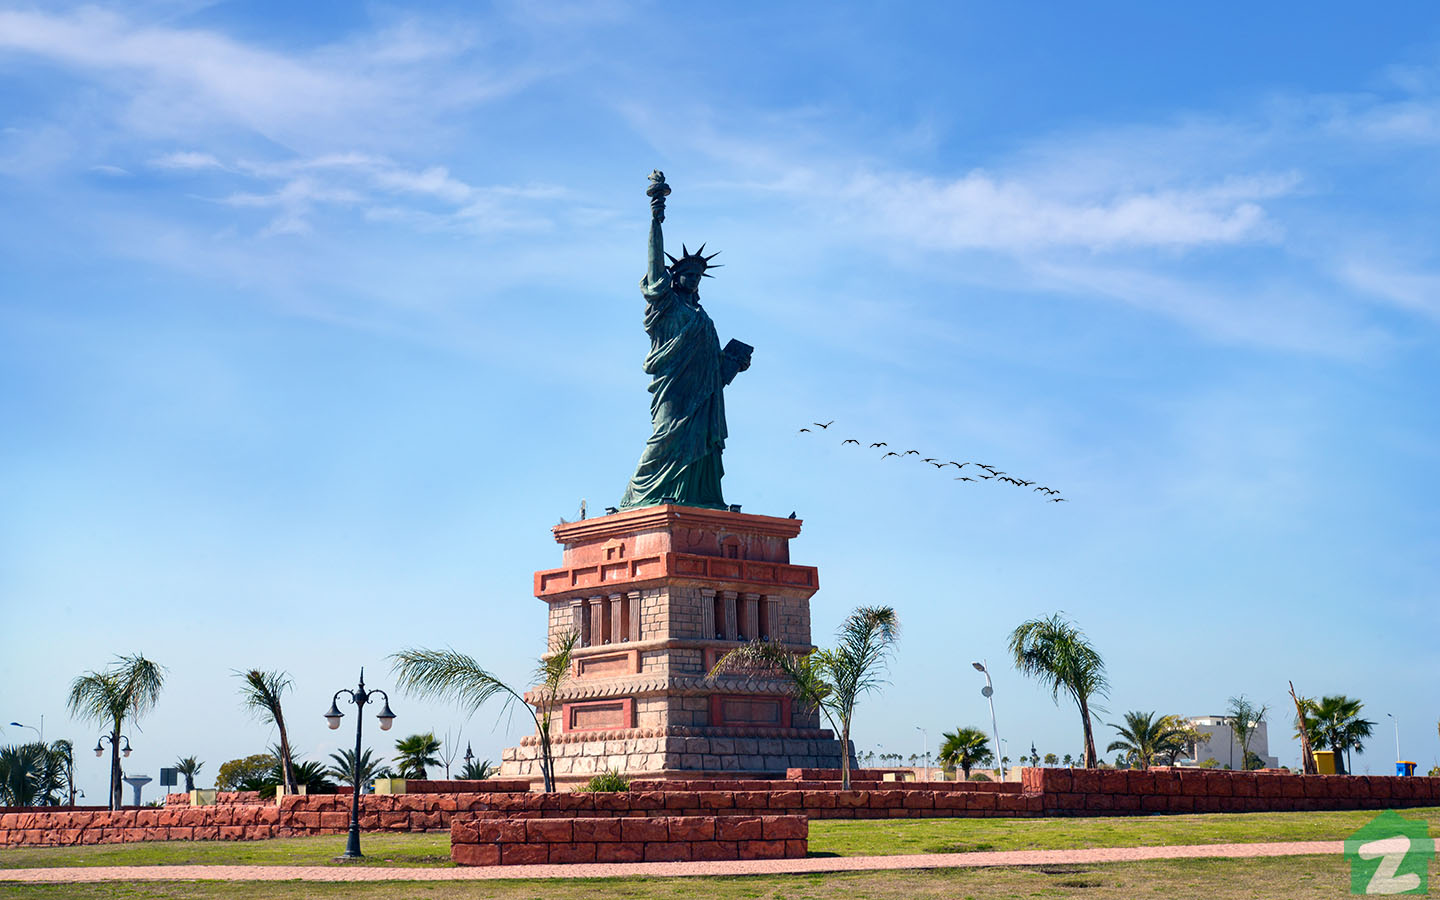 Statue of Liberty Replica located in Bahria Town, Phase 8, Rawalpindi